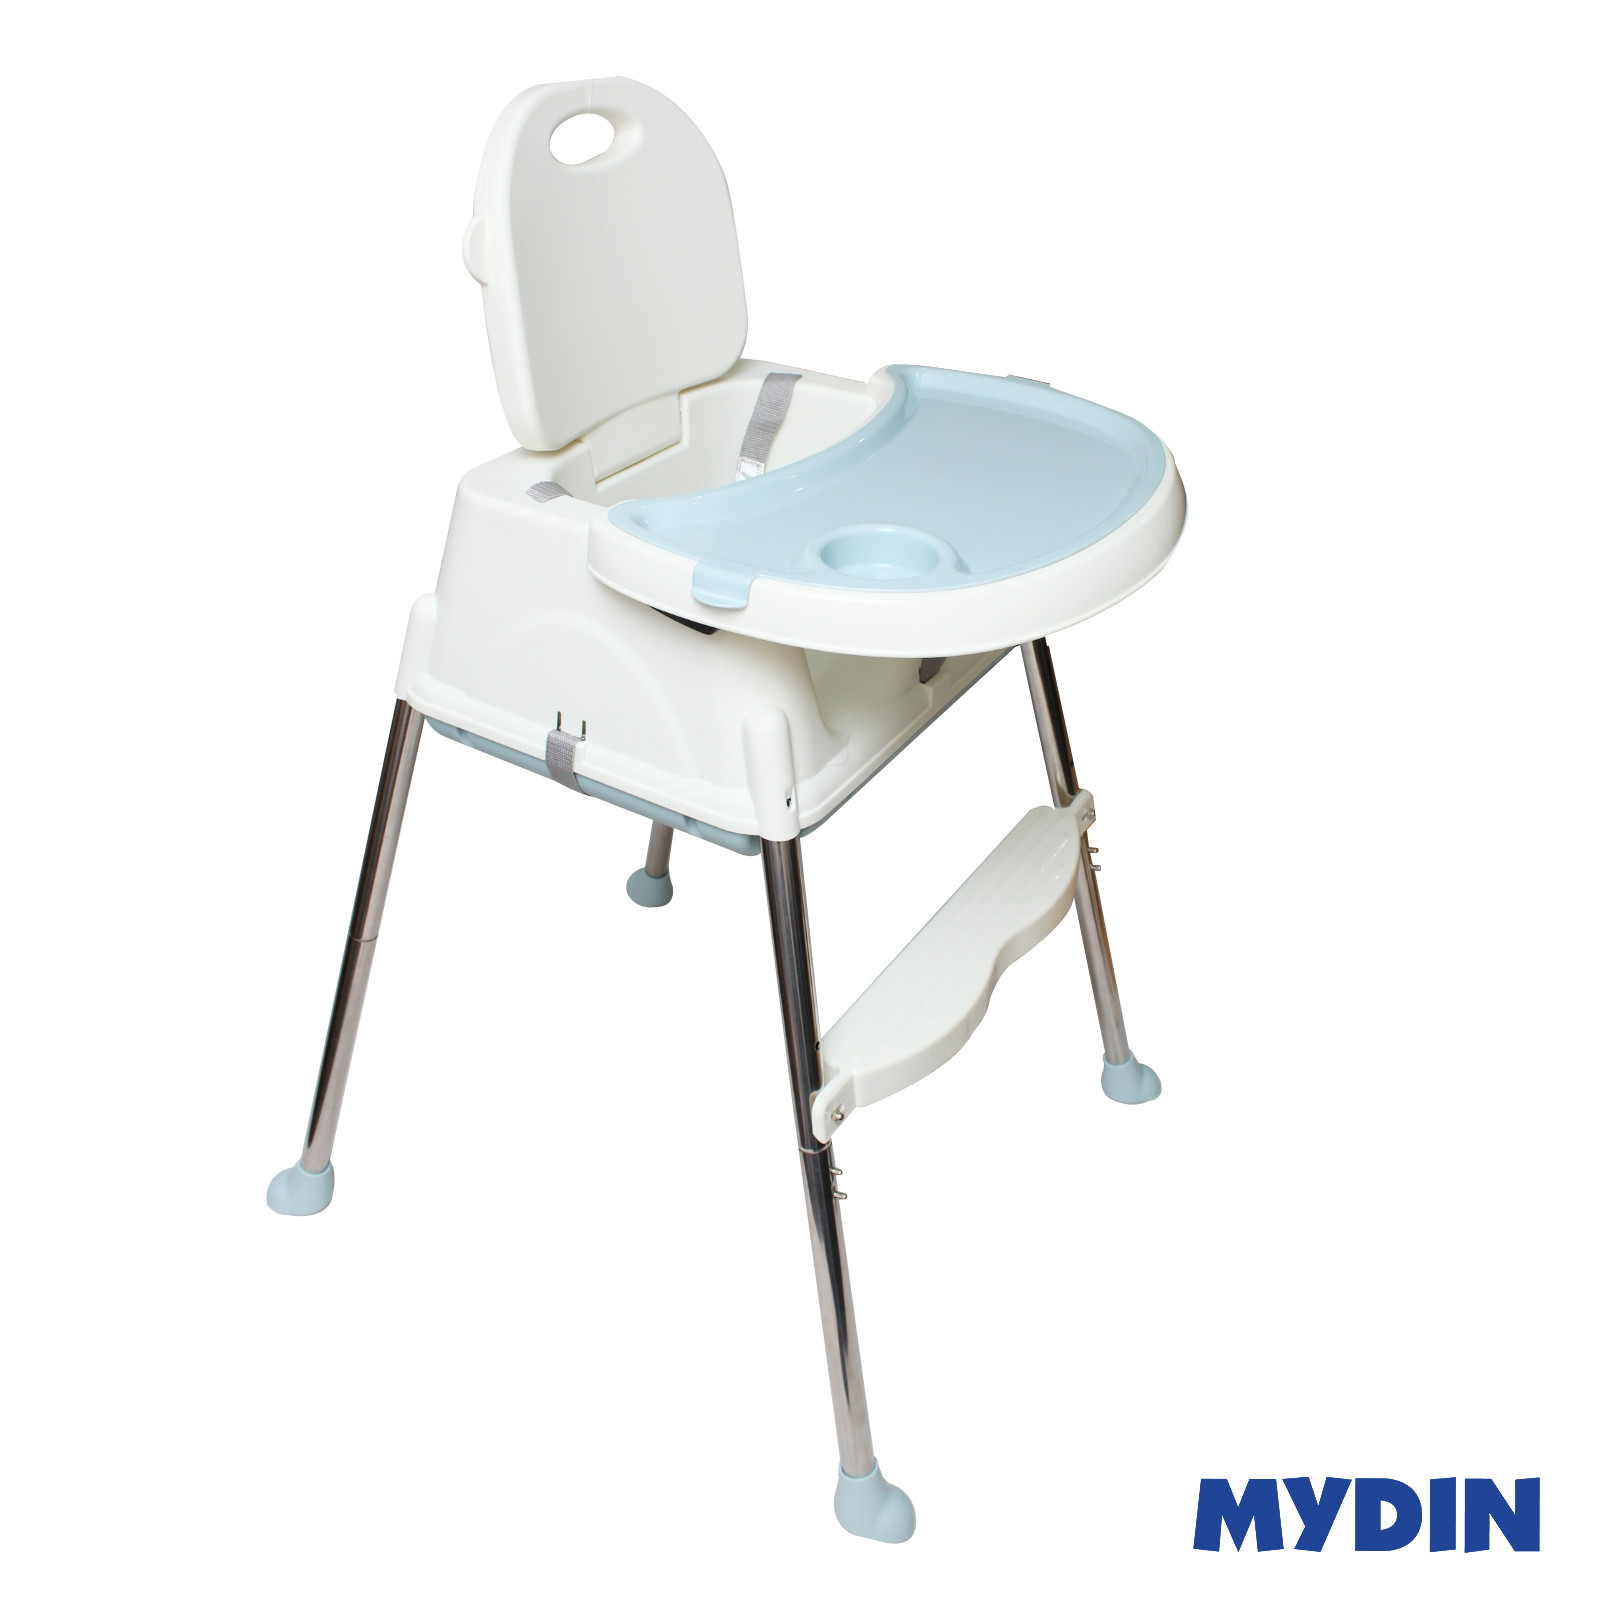 MYBB Portable Multi Function Foldable Baby Feeding Dining ChairBlue 0820YW-HE01A